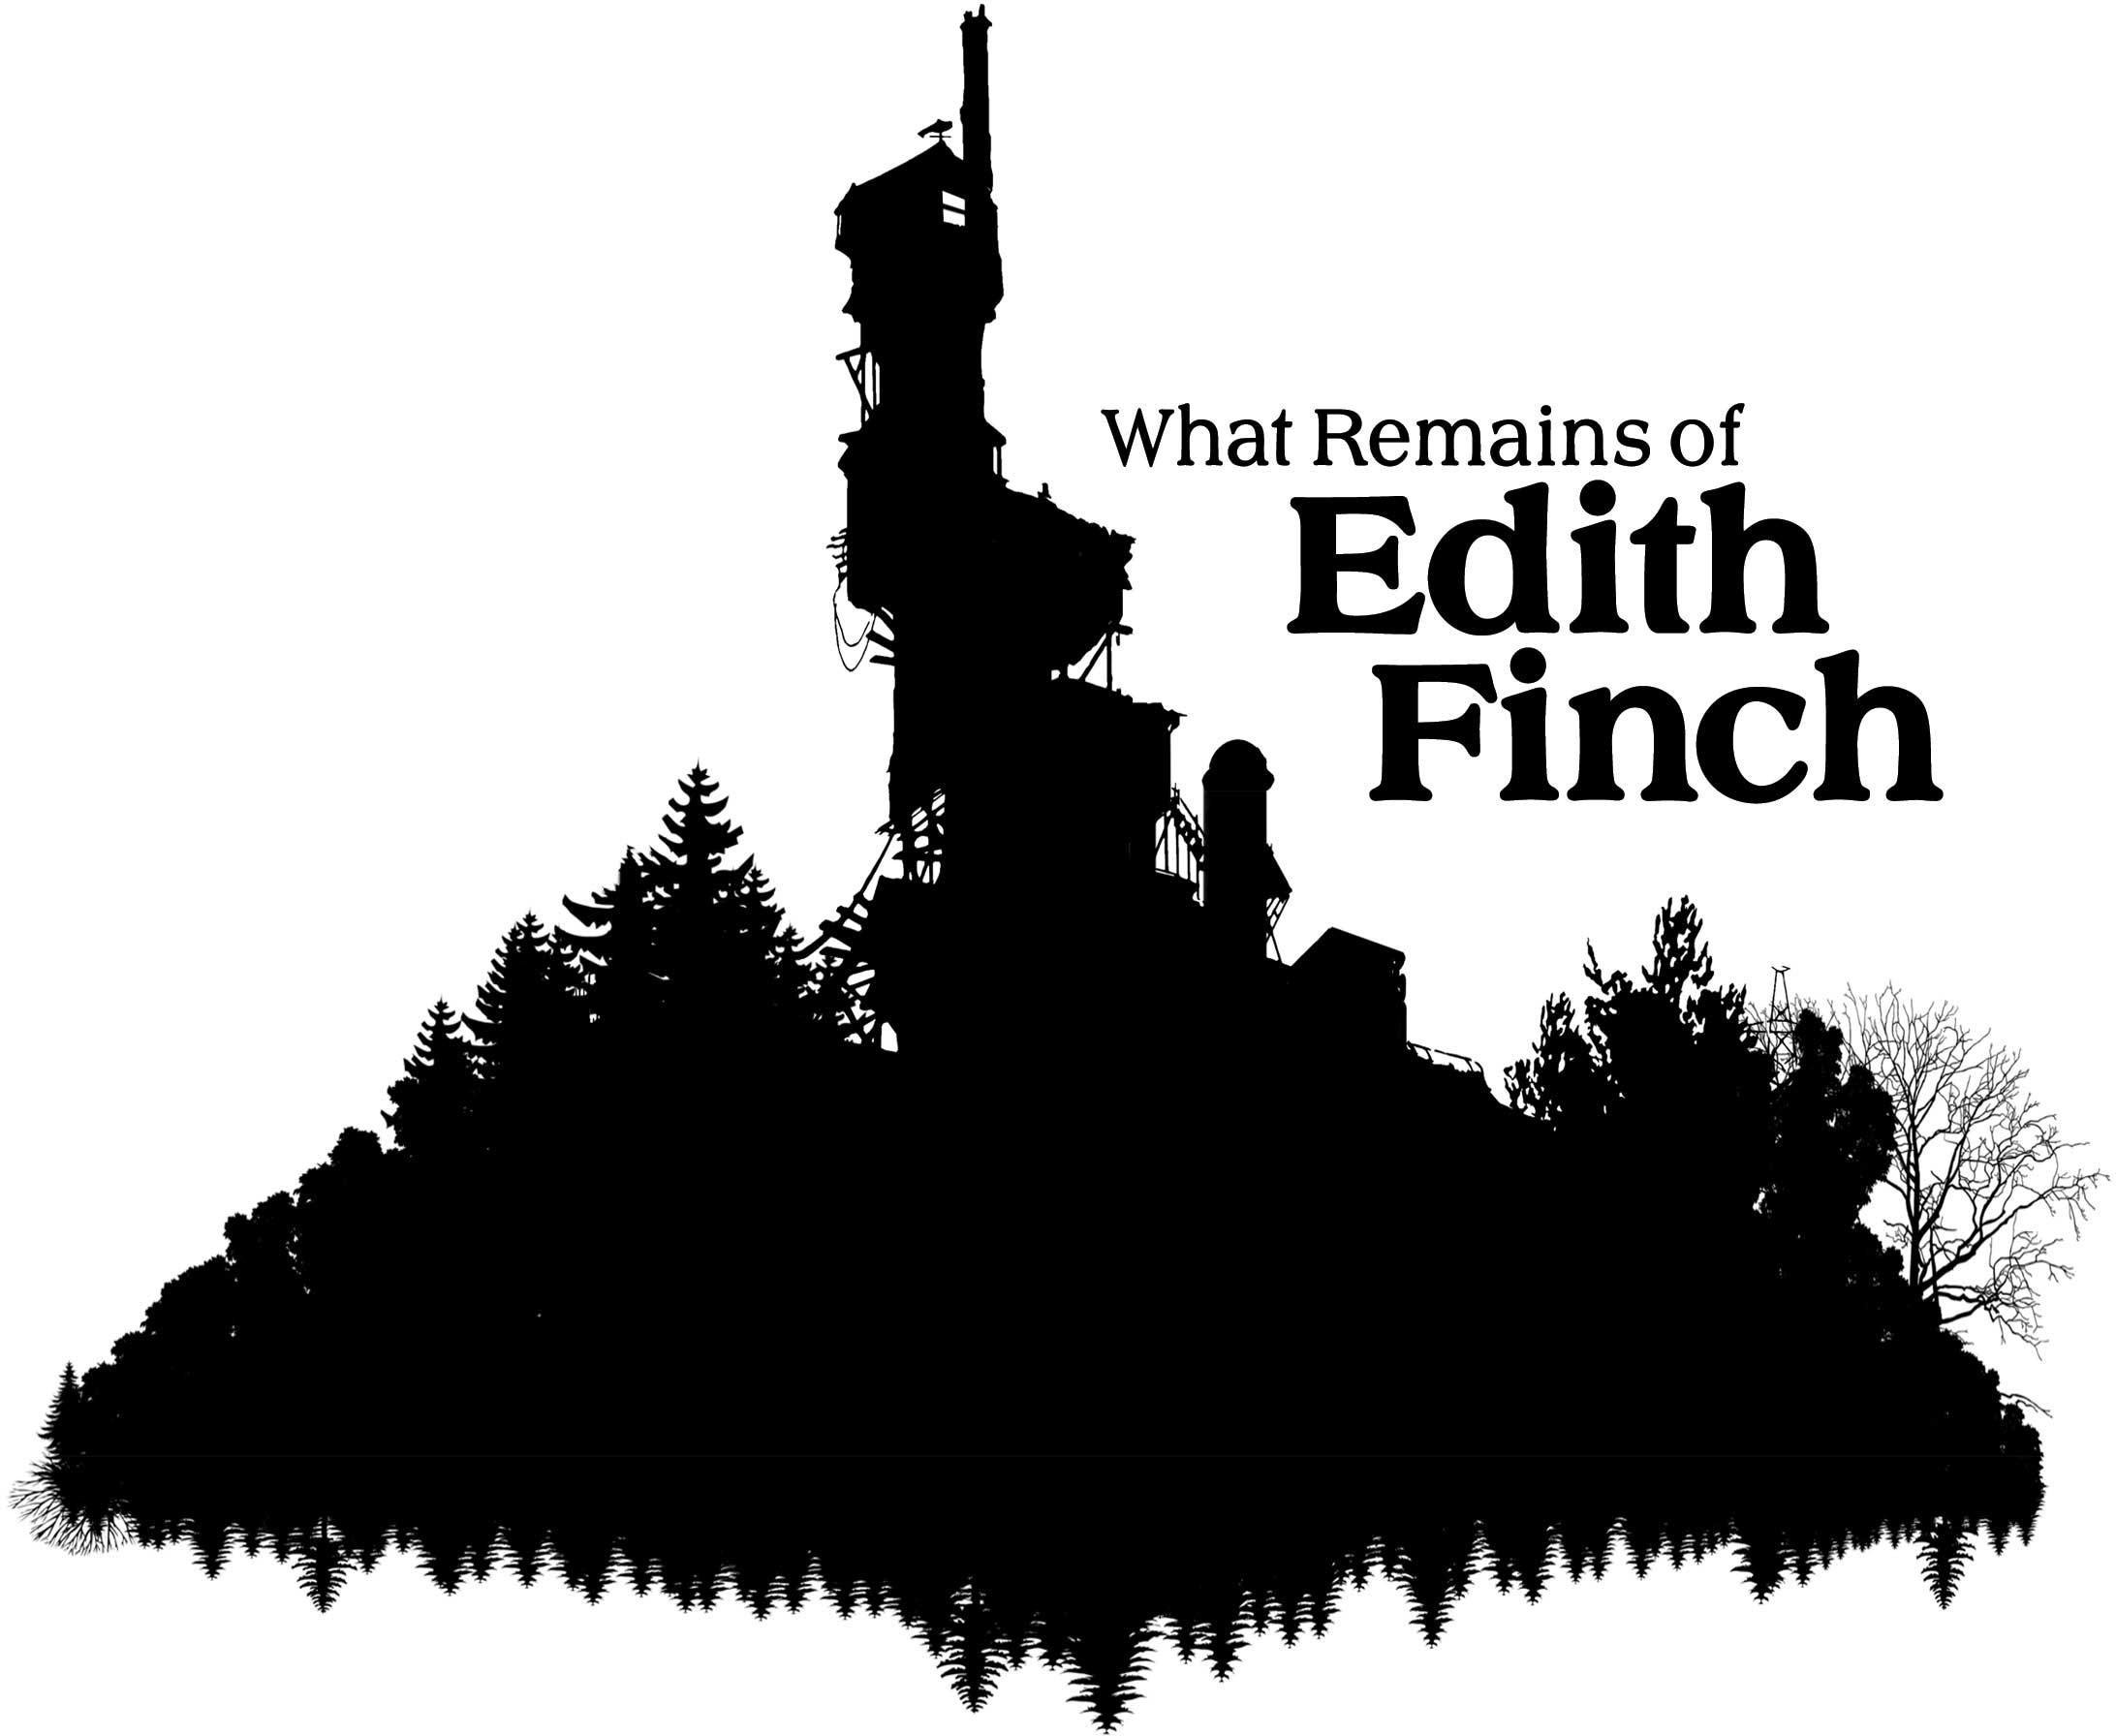 Edith Finch themes in games